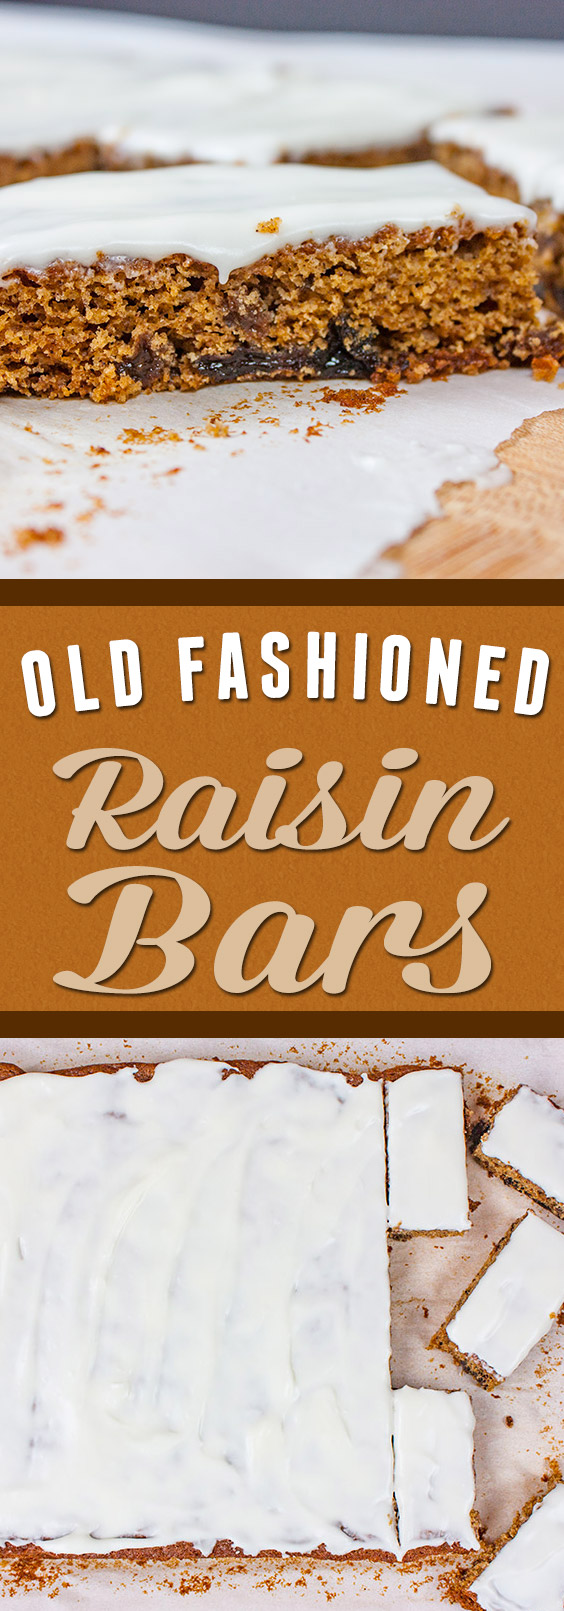 Old fashioned Raisin Bars - Let these moist, flavorful bites take you back in time!